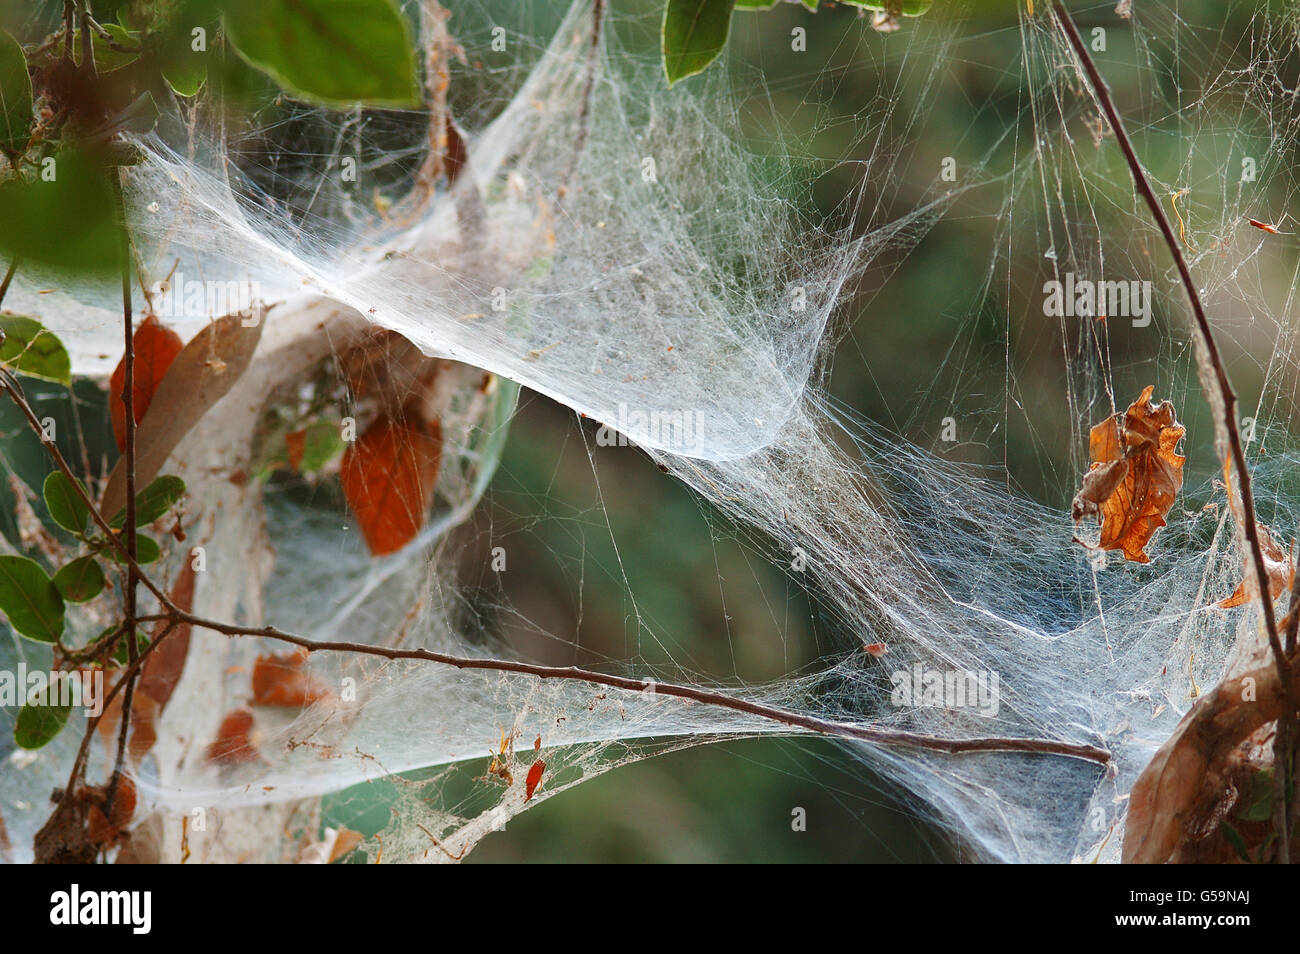 Old Spider web on dry plant - Stock Image